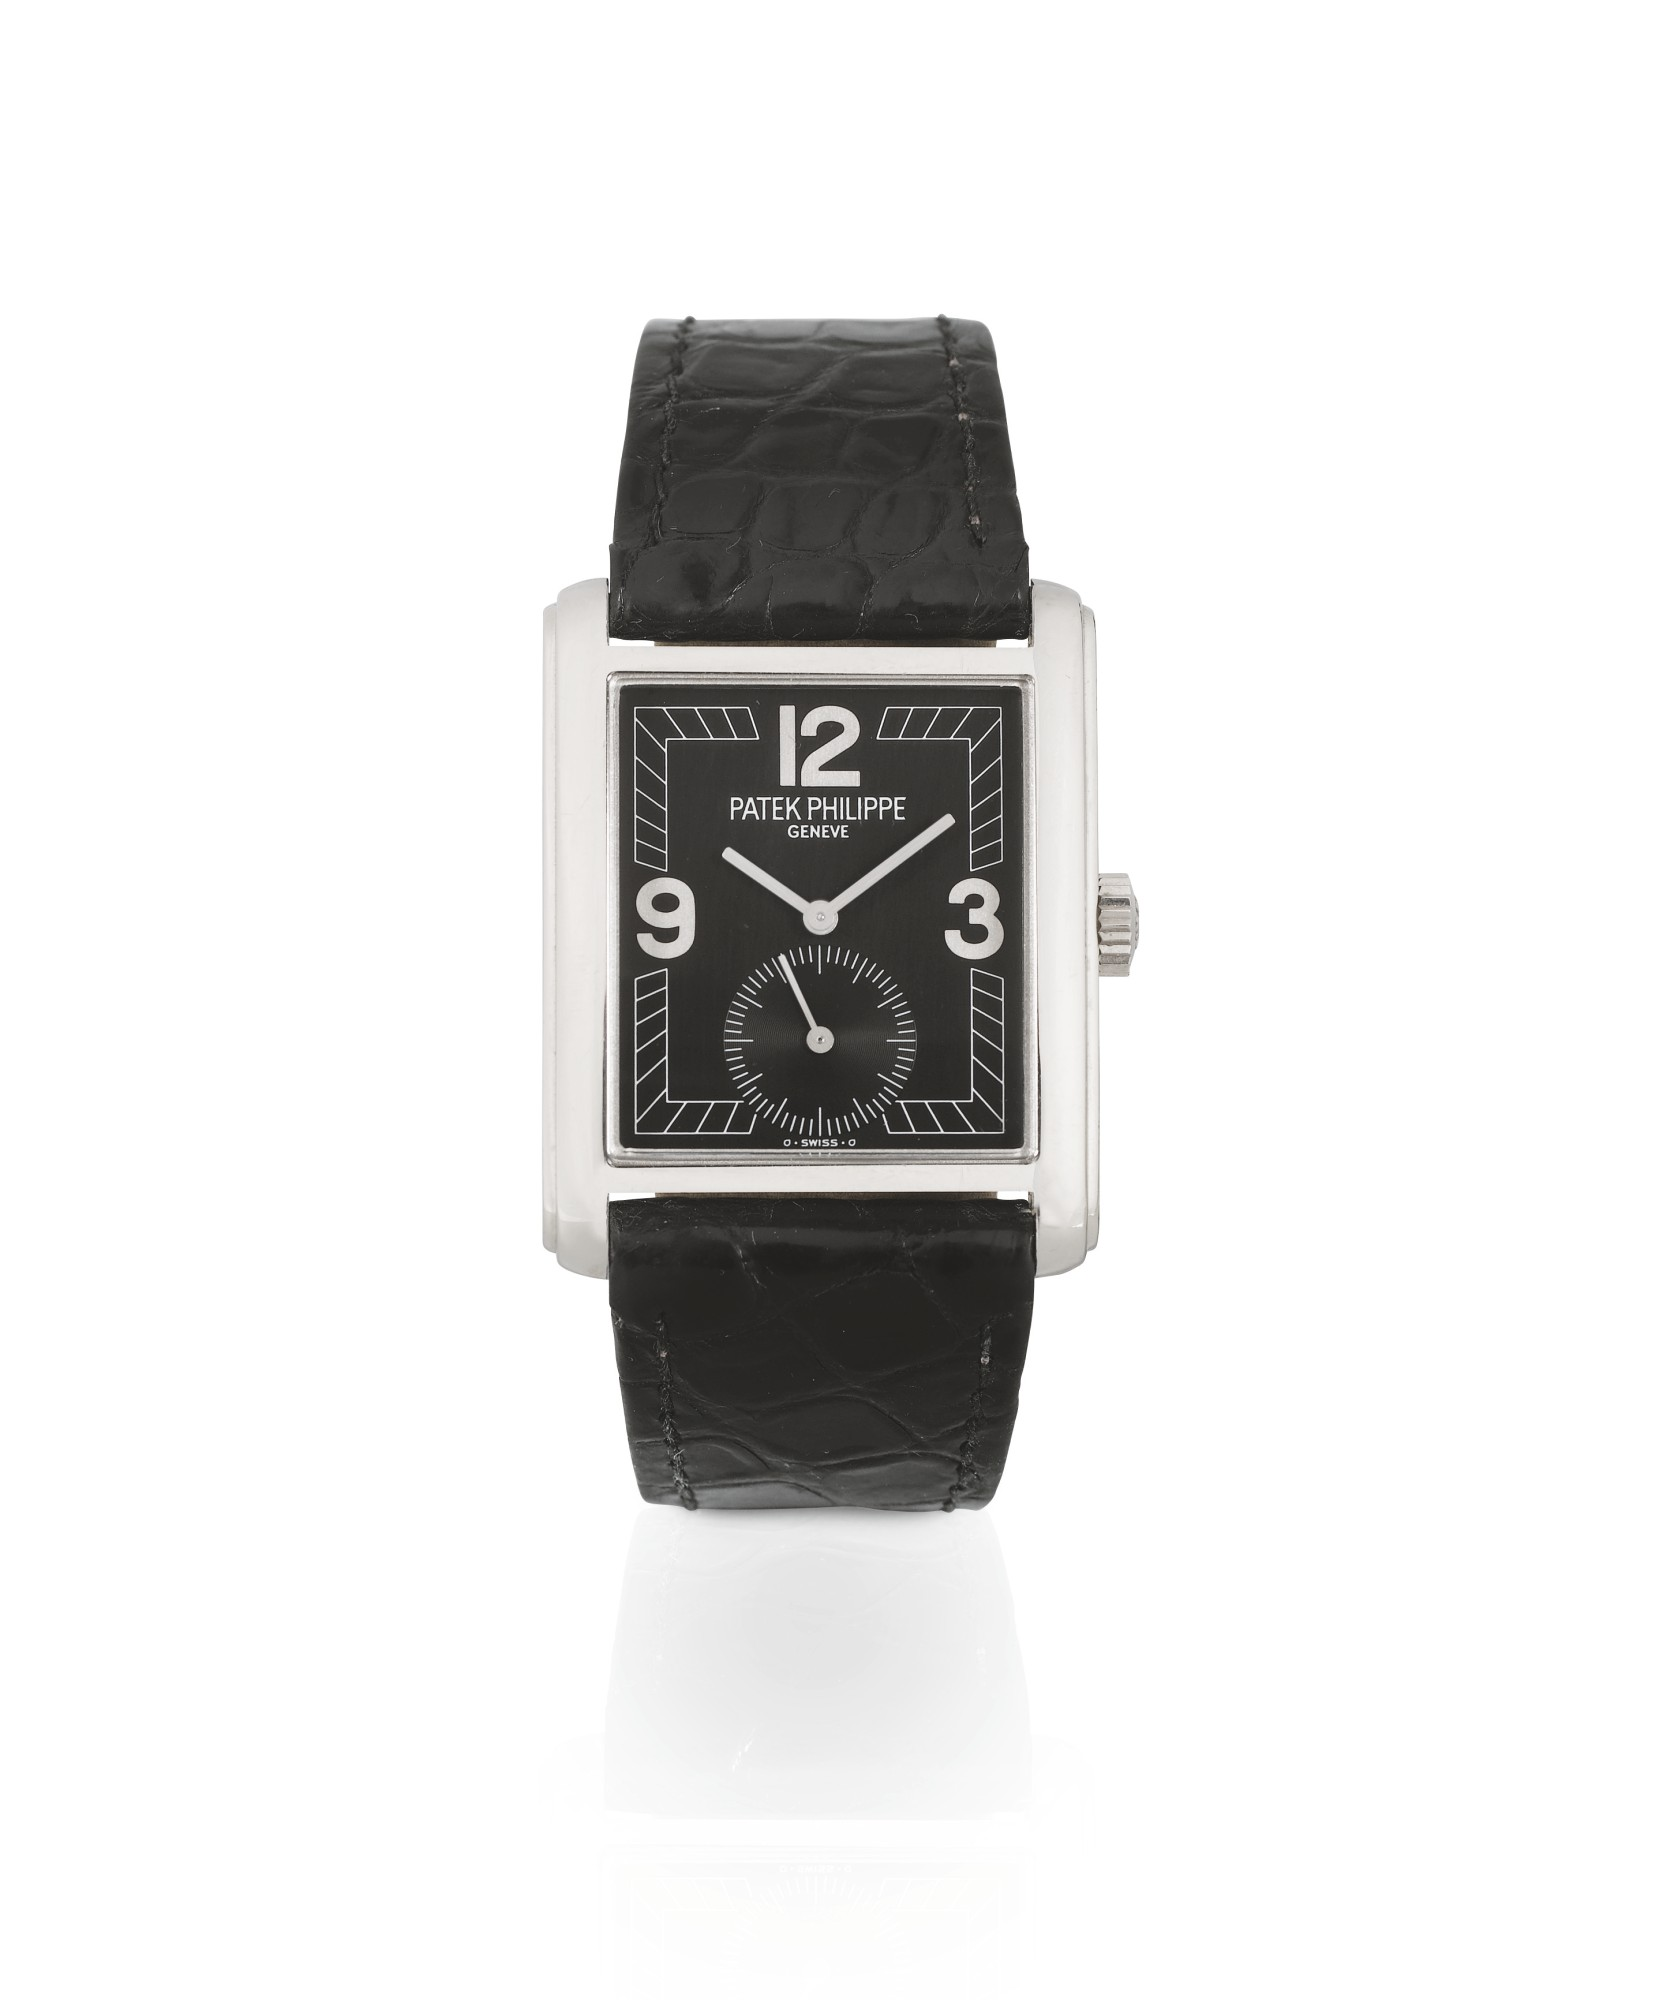 PATEK PHILIPPE | GONDOLO, RECTANGULAR WHITE GOLD WRISTWATCH, MADE IN 1998 [GONDOLO, MONTRE RECTANGULAIRE EN OR BLANC]